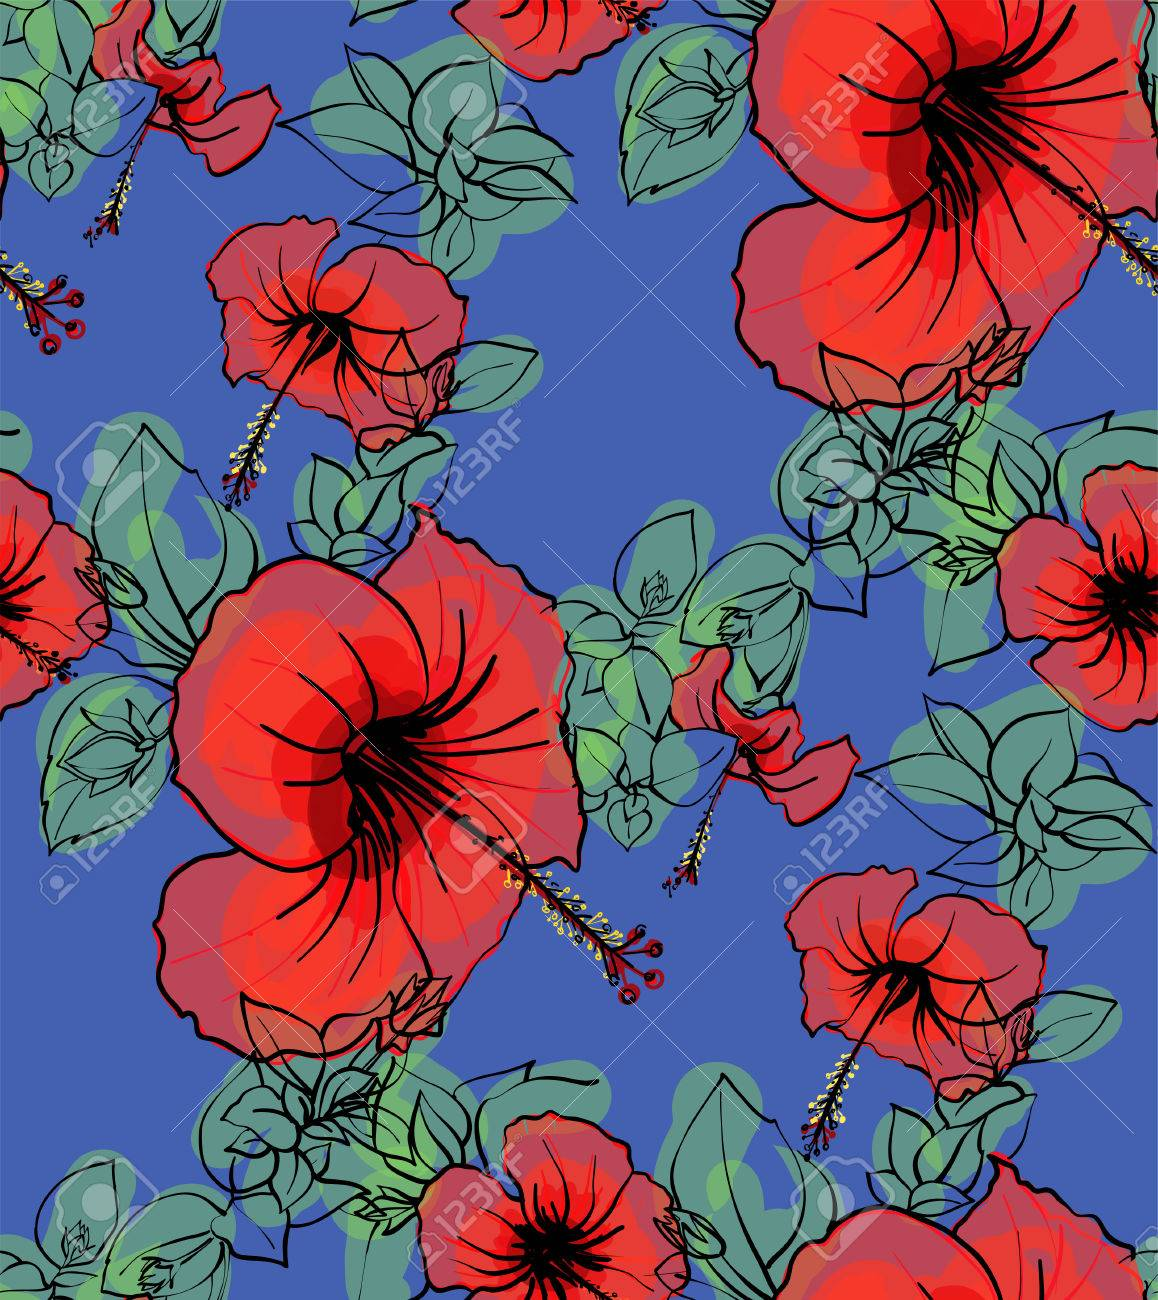 Floral seamless background pattern spring summer season floral seamless background pattern spring summer season hibiscus flowers hand drawnctor illustration dhlflorist Image collections